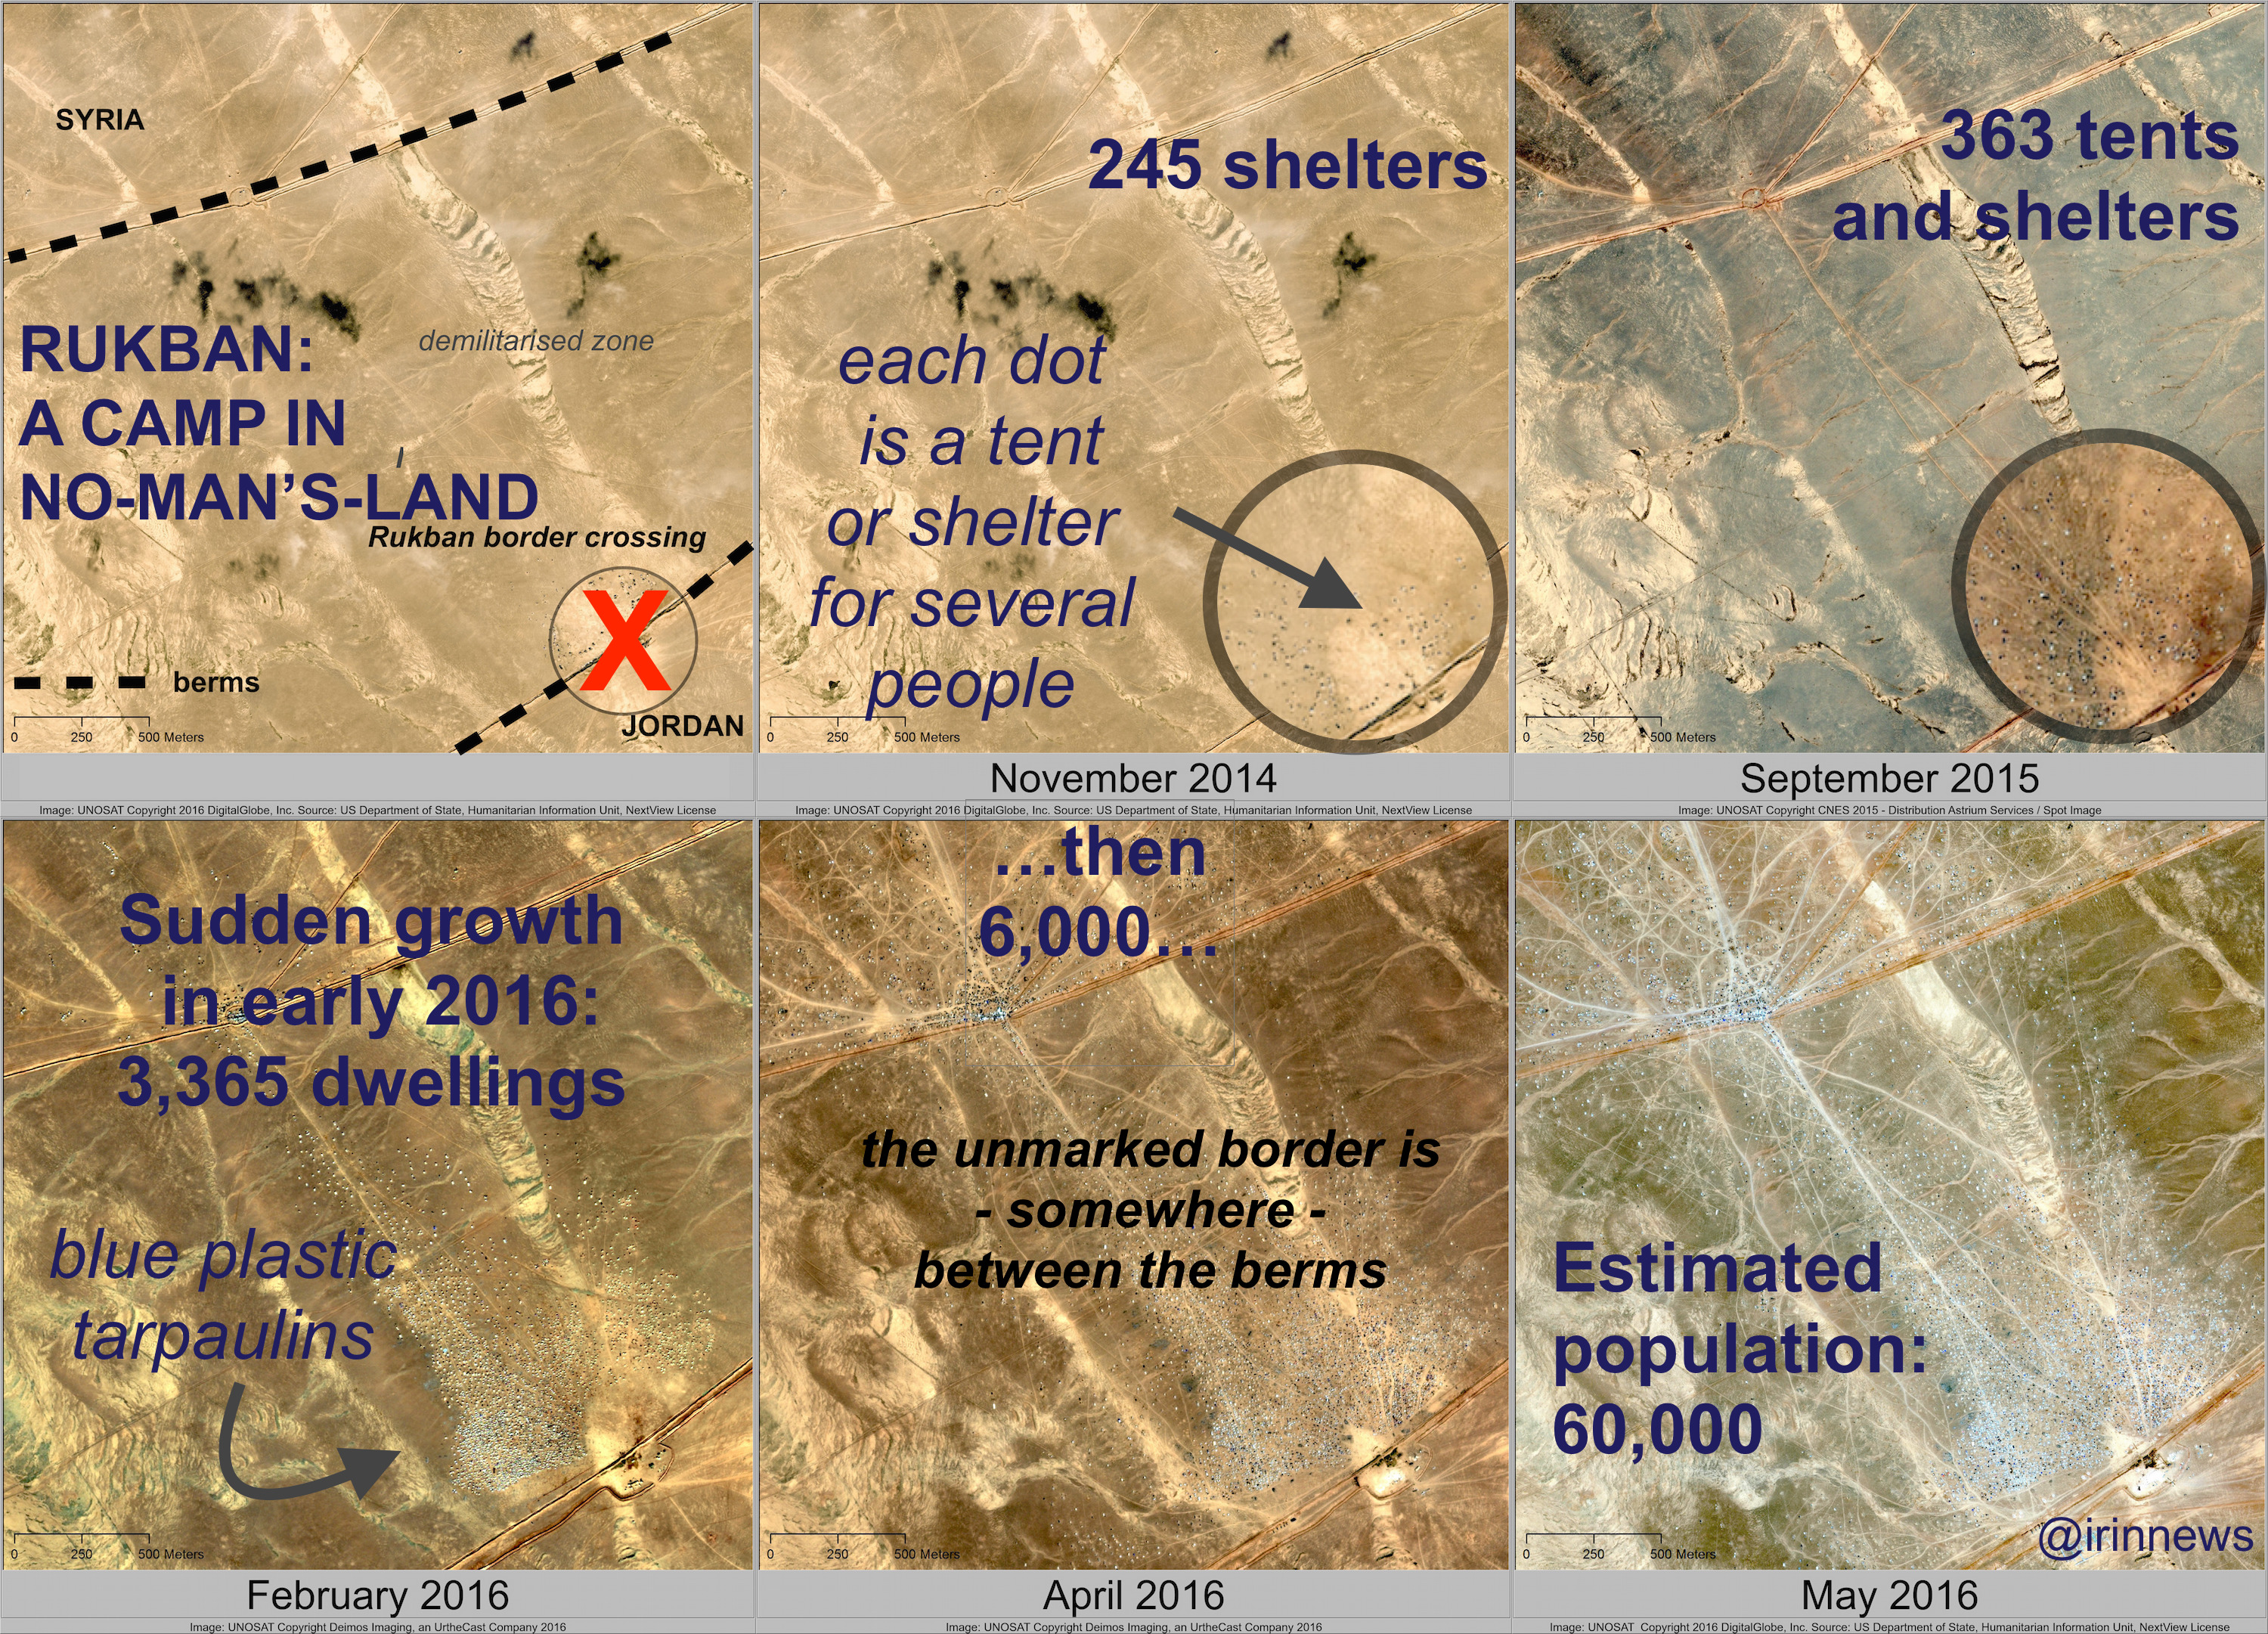 The growth of the Rukban settlement seen in satellite imagery